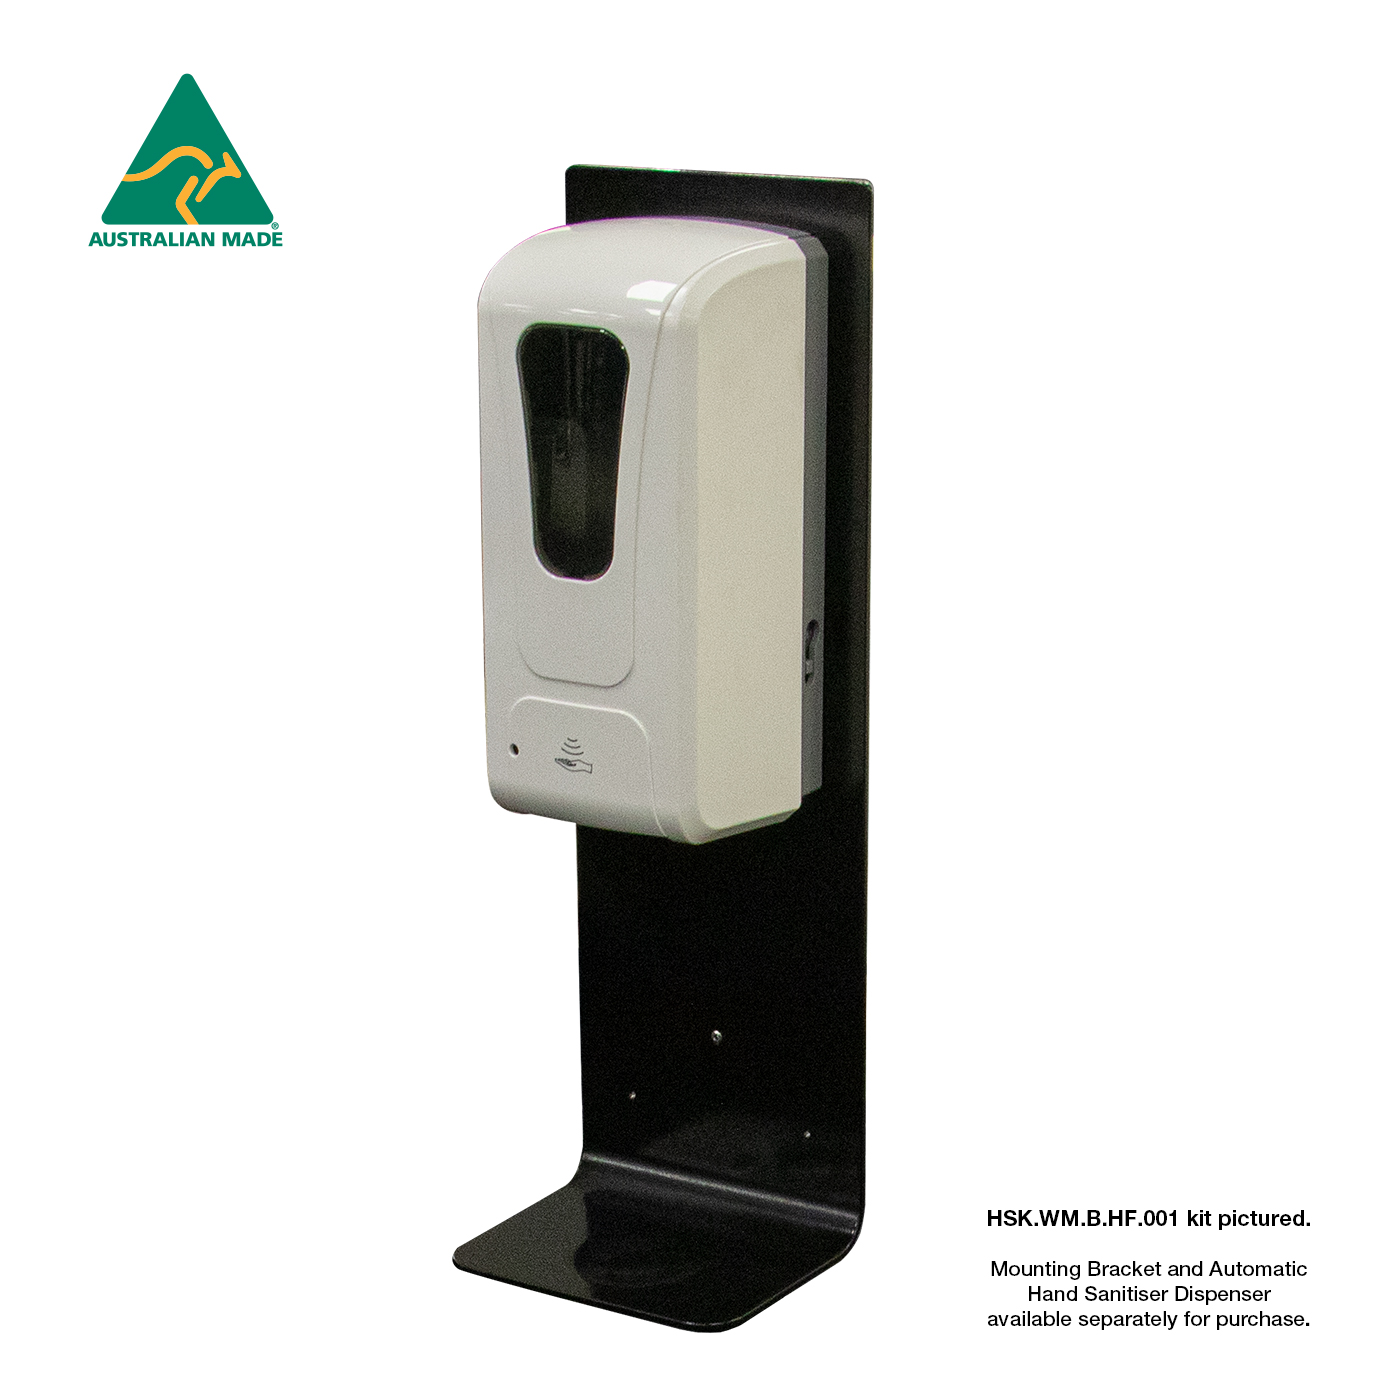 Black Wall Mounting Plate - For Hand Sanitiser Dispenser - Shown with dispenser